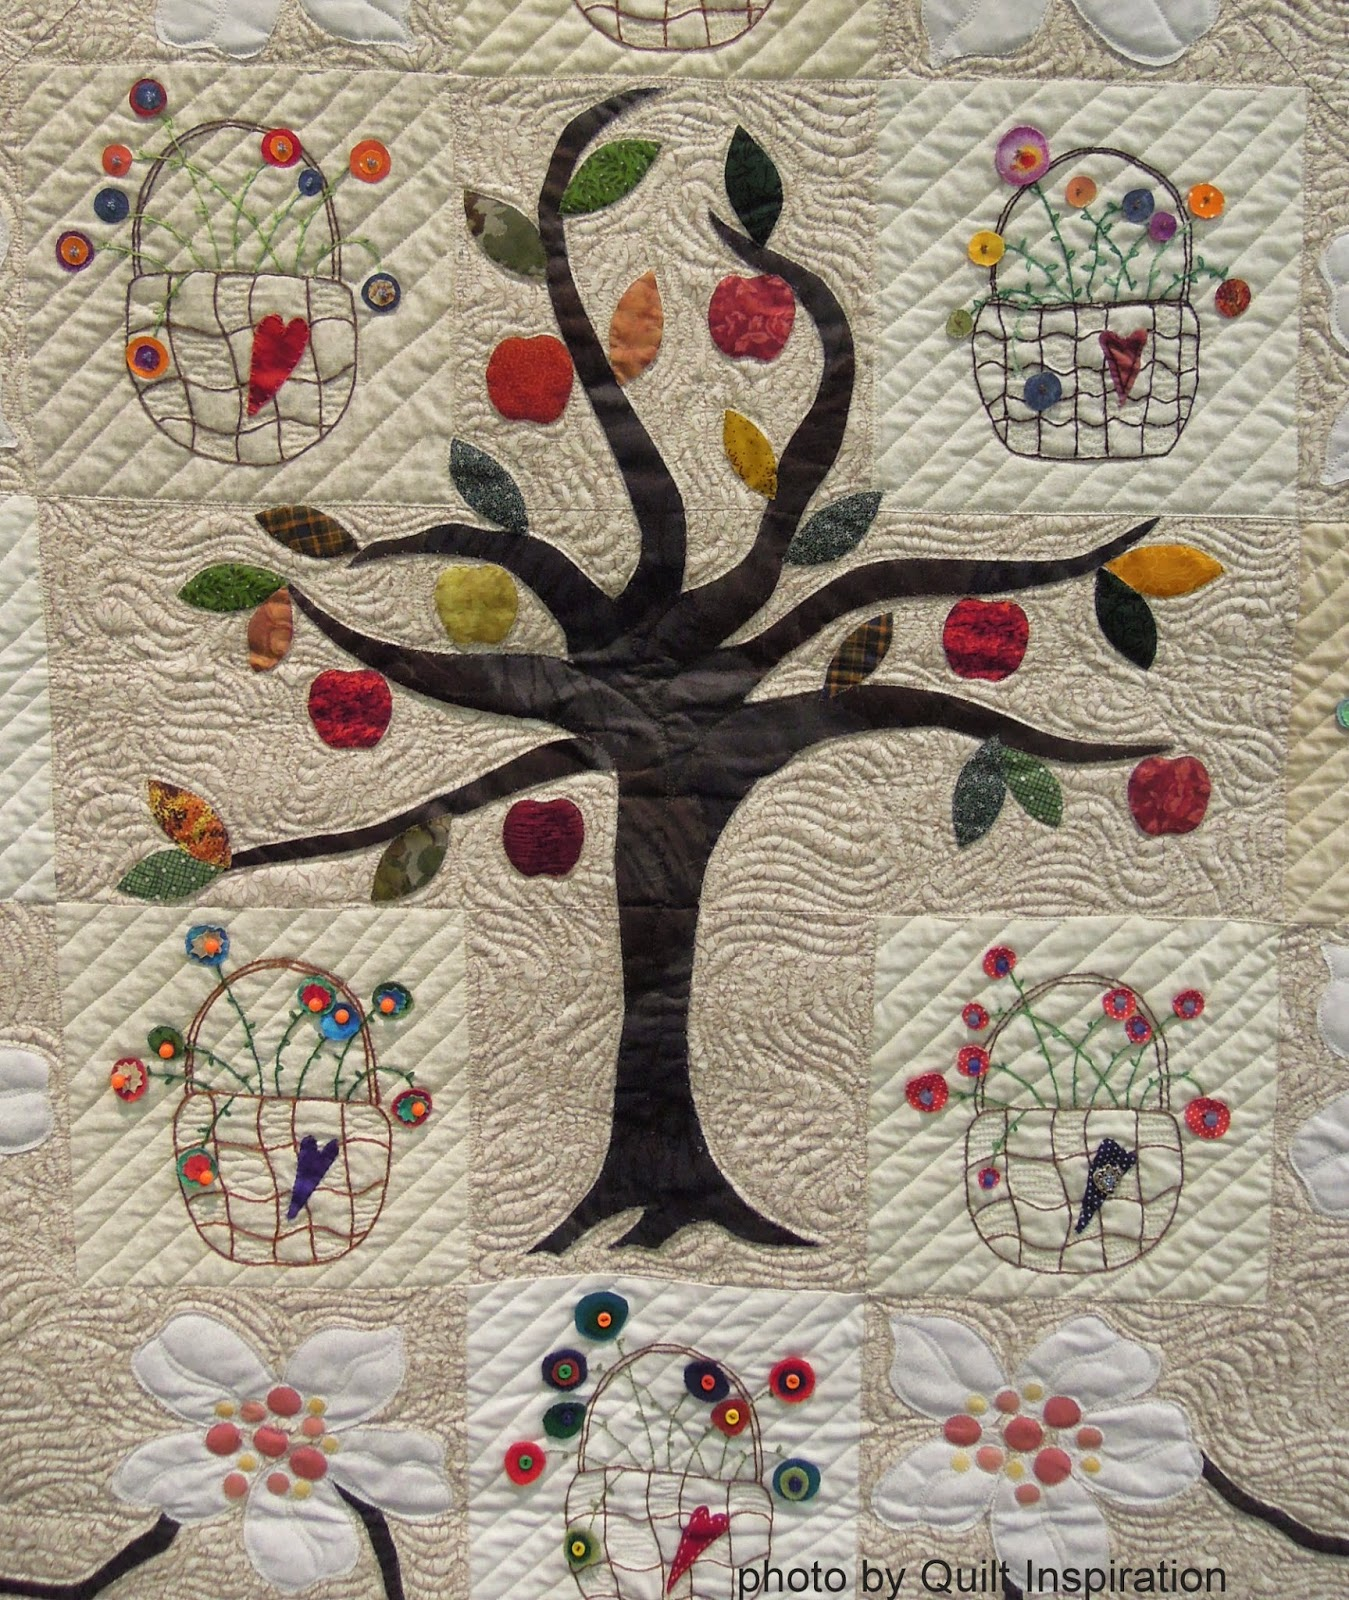 Quilt Inspiration: Celebrating Autumn Quilts : apple tree quilting - Adamdwight.com